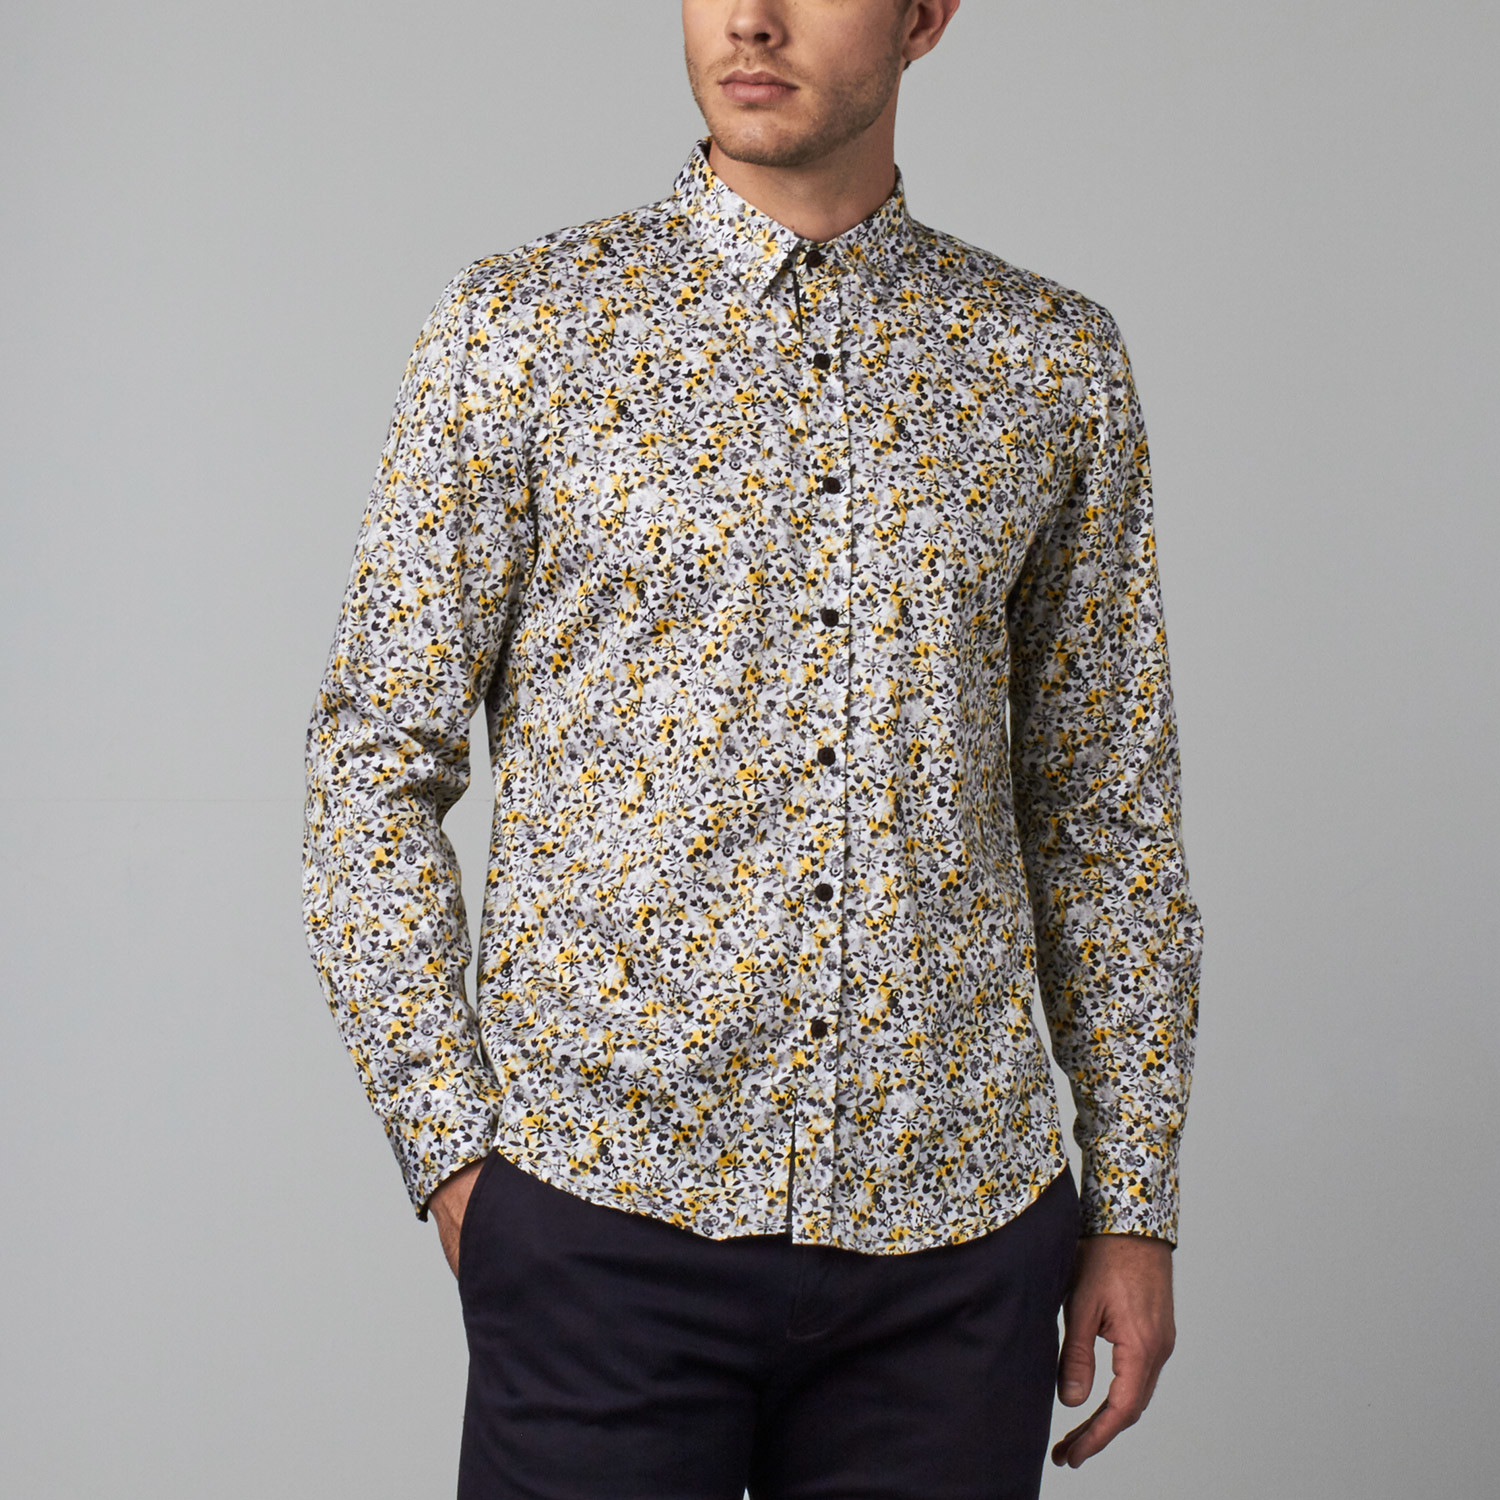 Flower ditzy print button up shirt yellow s isaac b for Floral print button up shirt